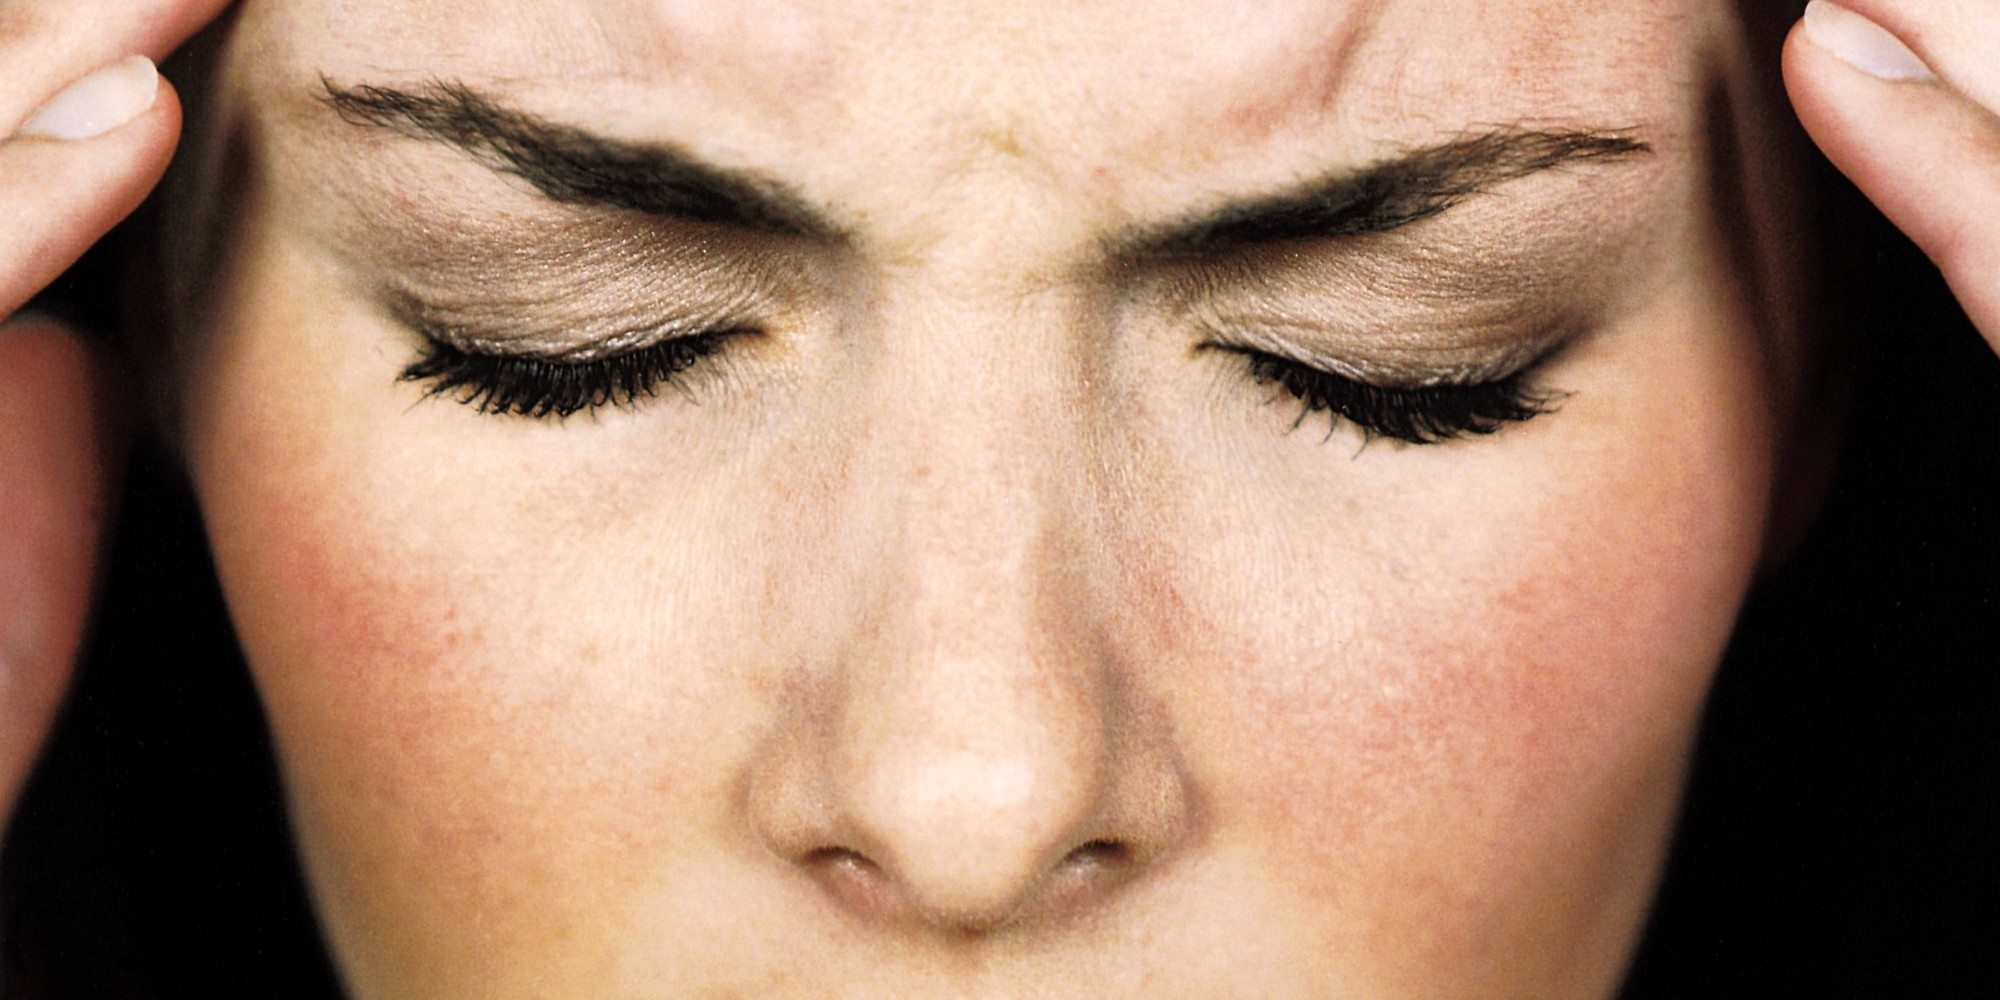 'Immunize' Yourself Against Bad Moods? New Research ...